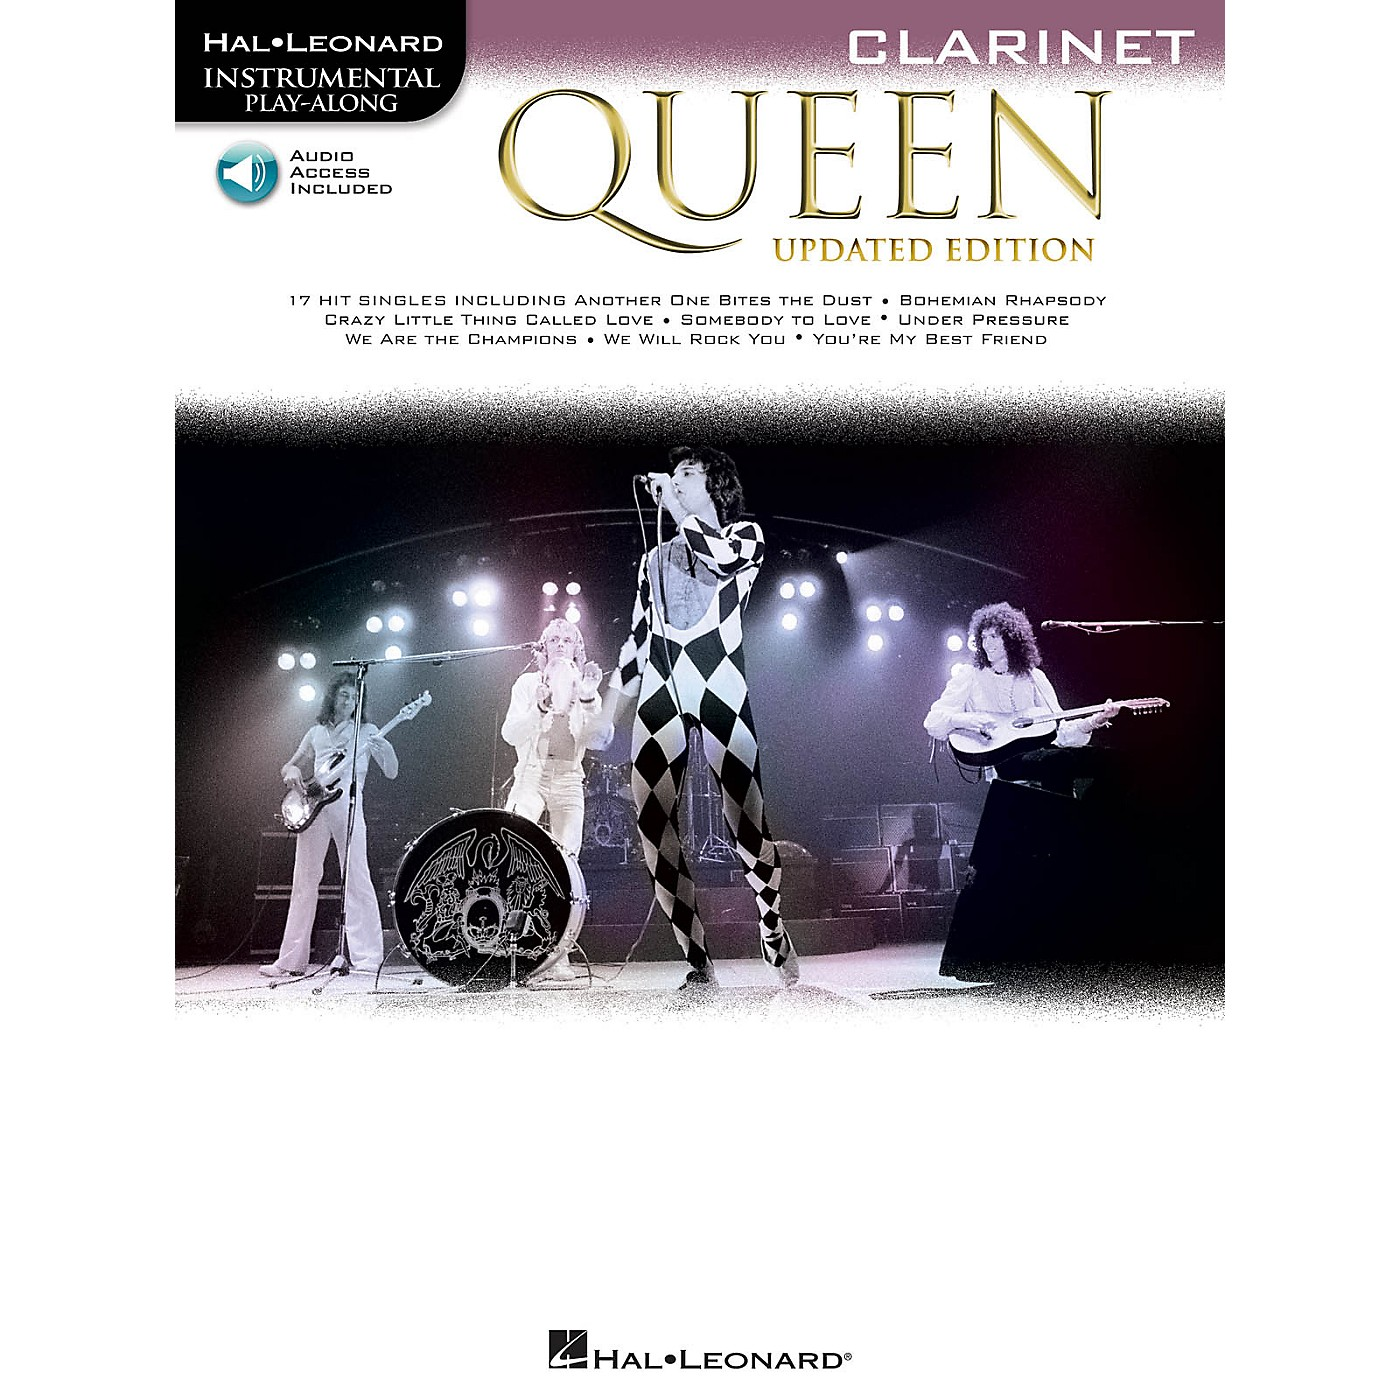 Hal Leonard Queen - Updated Edition Clarinet Instrumental Play-Along Songbook Book/Audio Online thumbnail